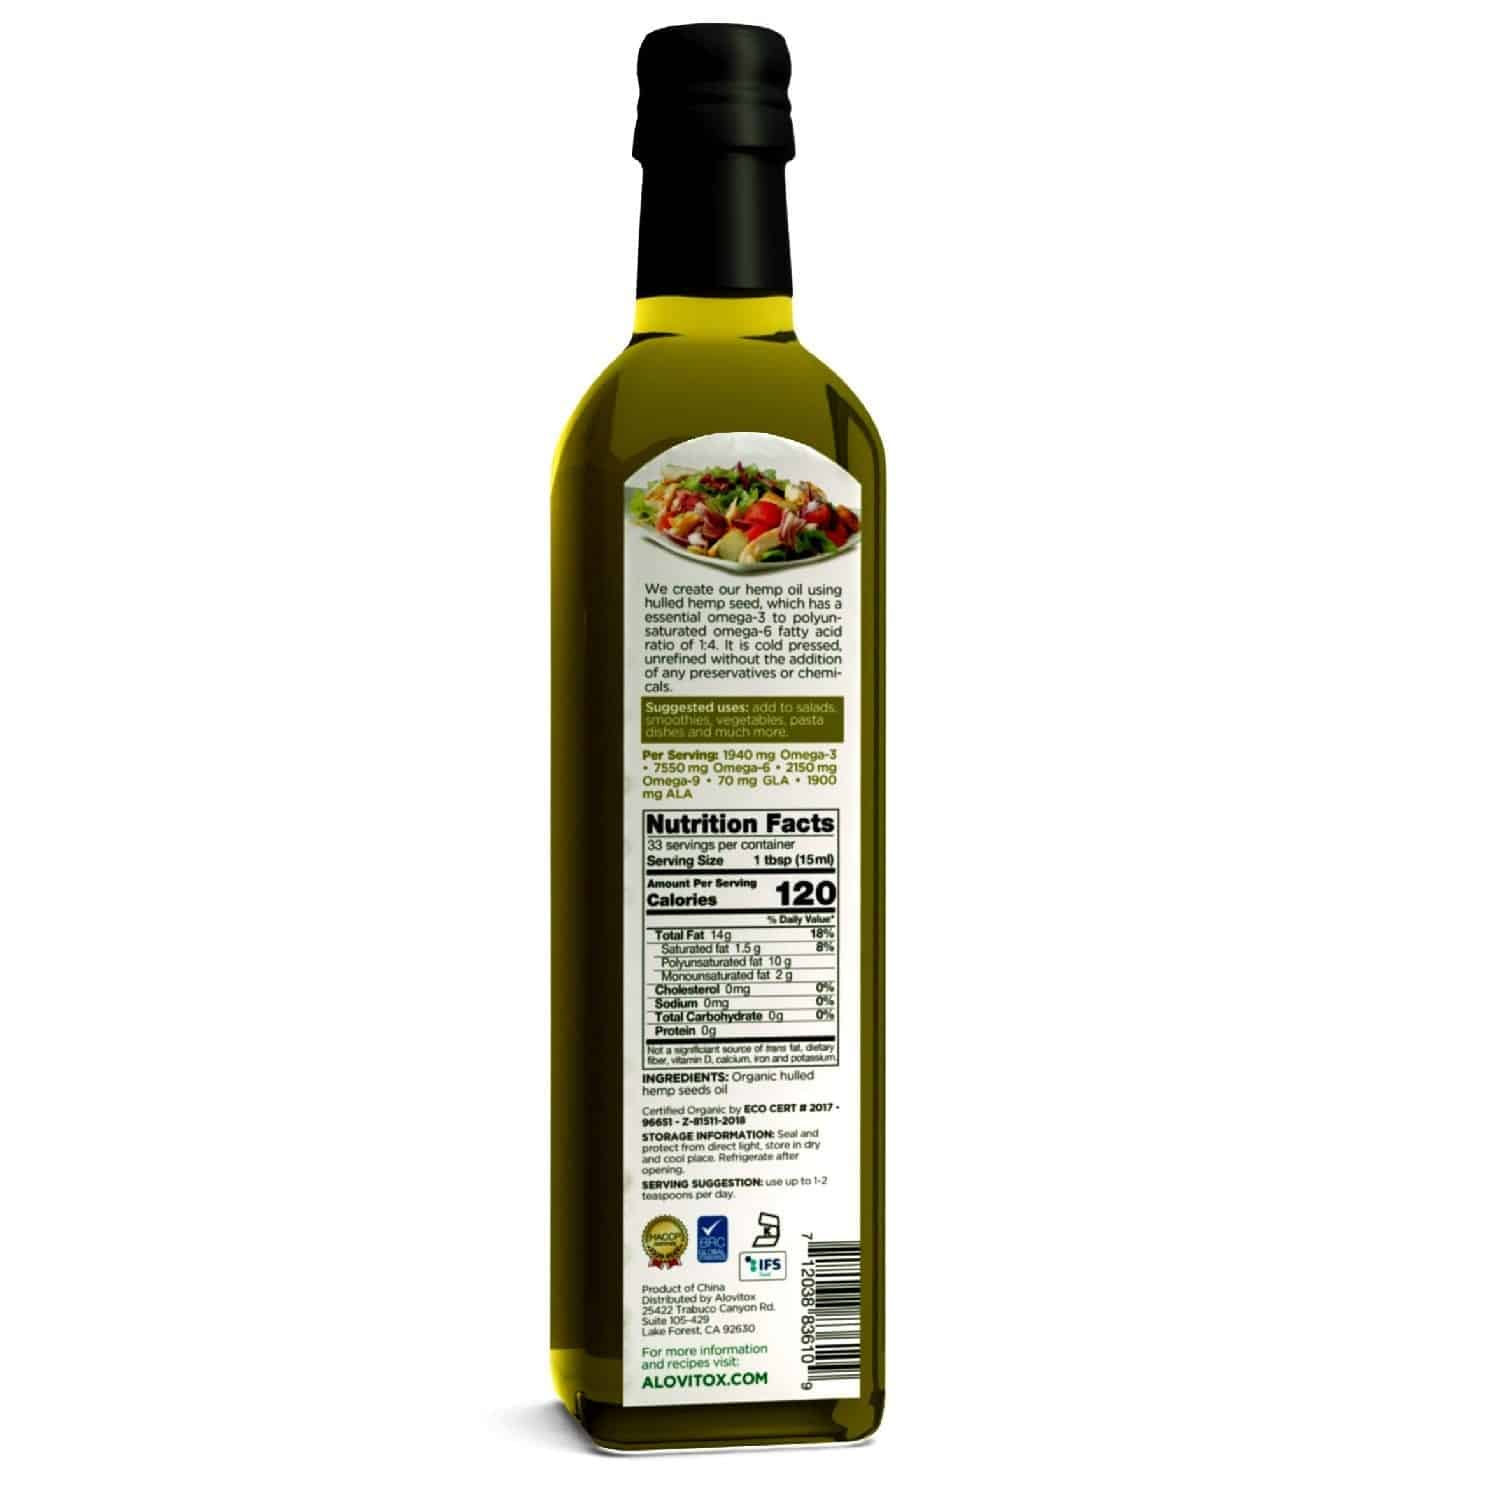 Organic Premium Hulled Hemp Seed Oil